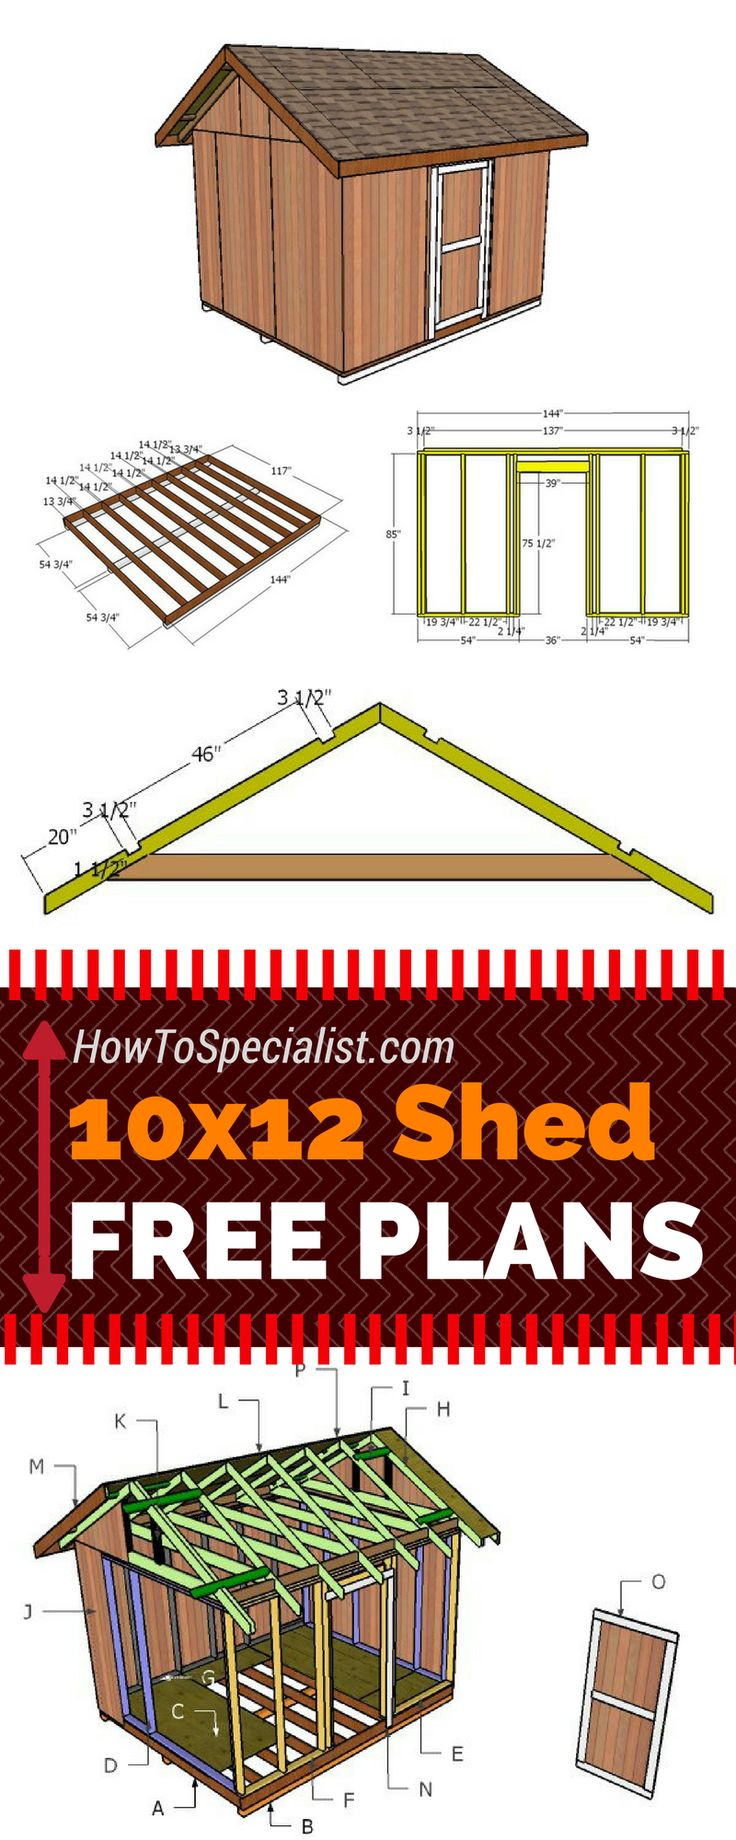 25 Best Ideas About Diy Shed On Pinterest Garden Shed Diy